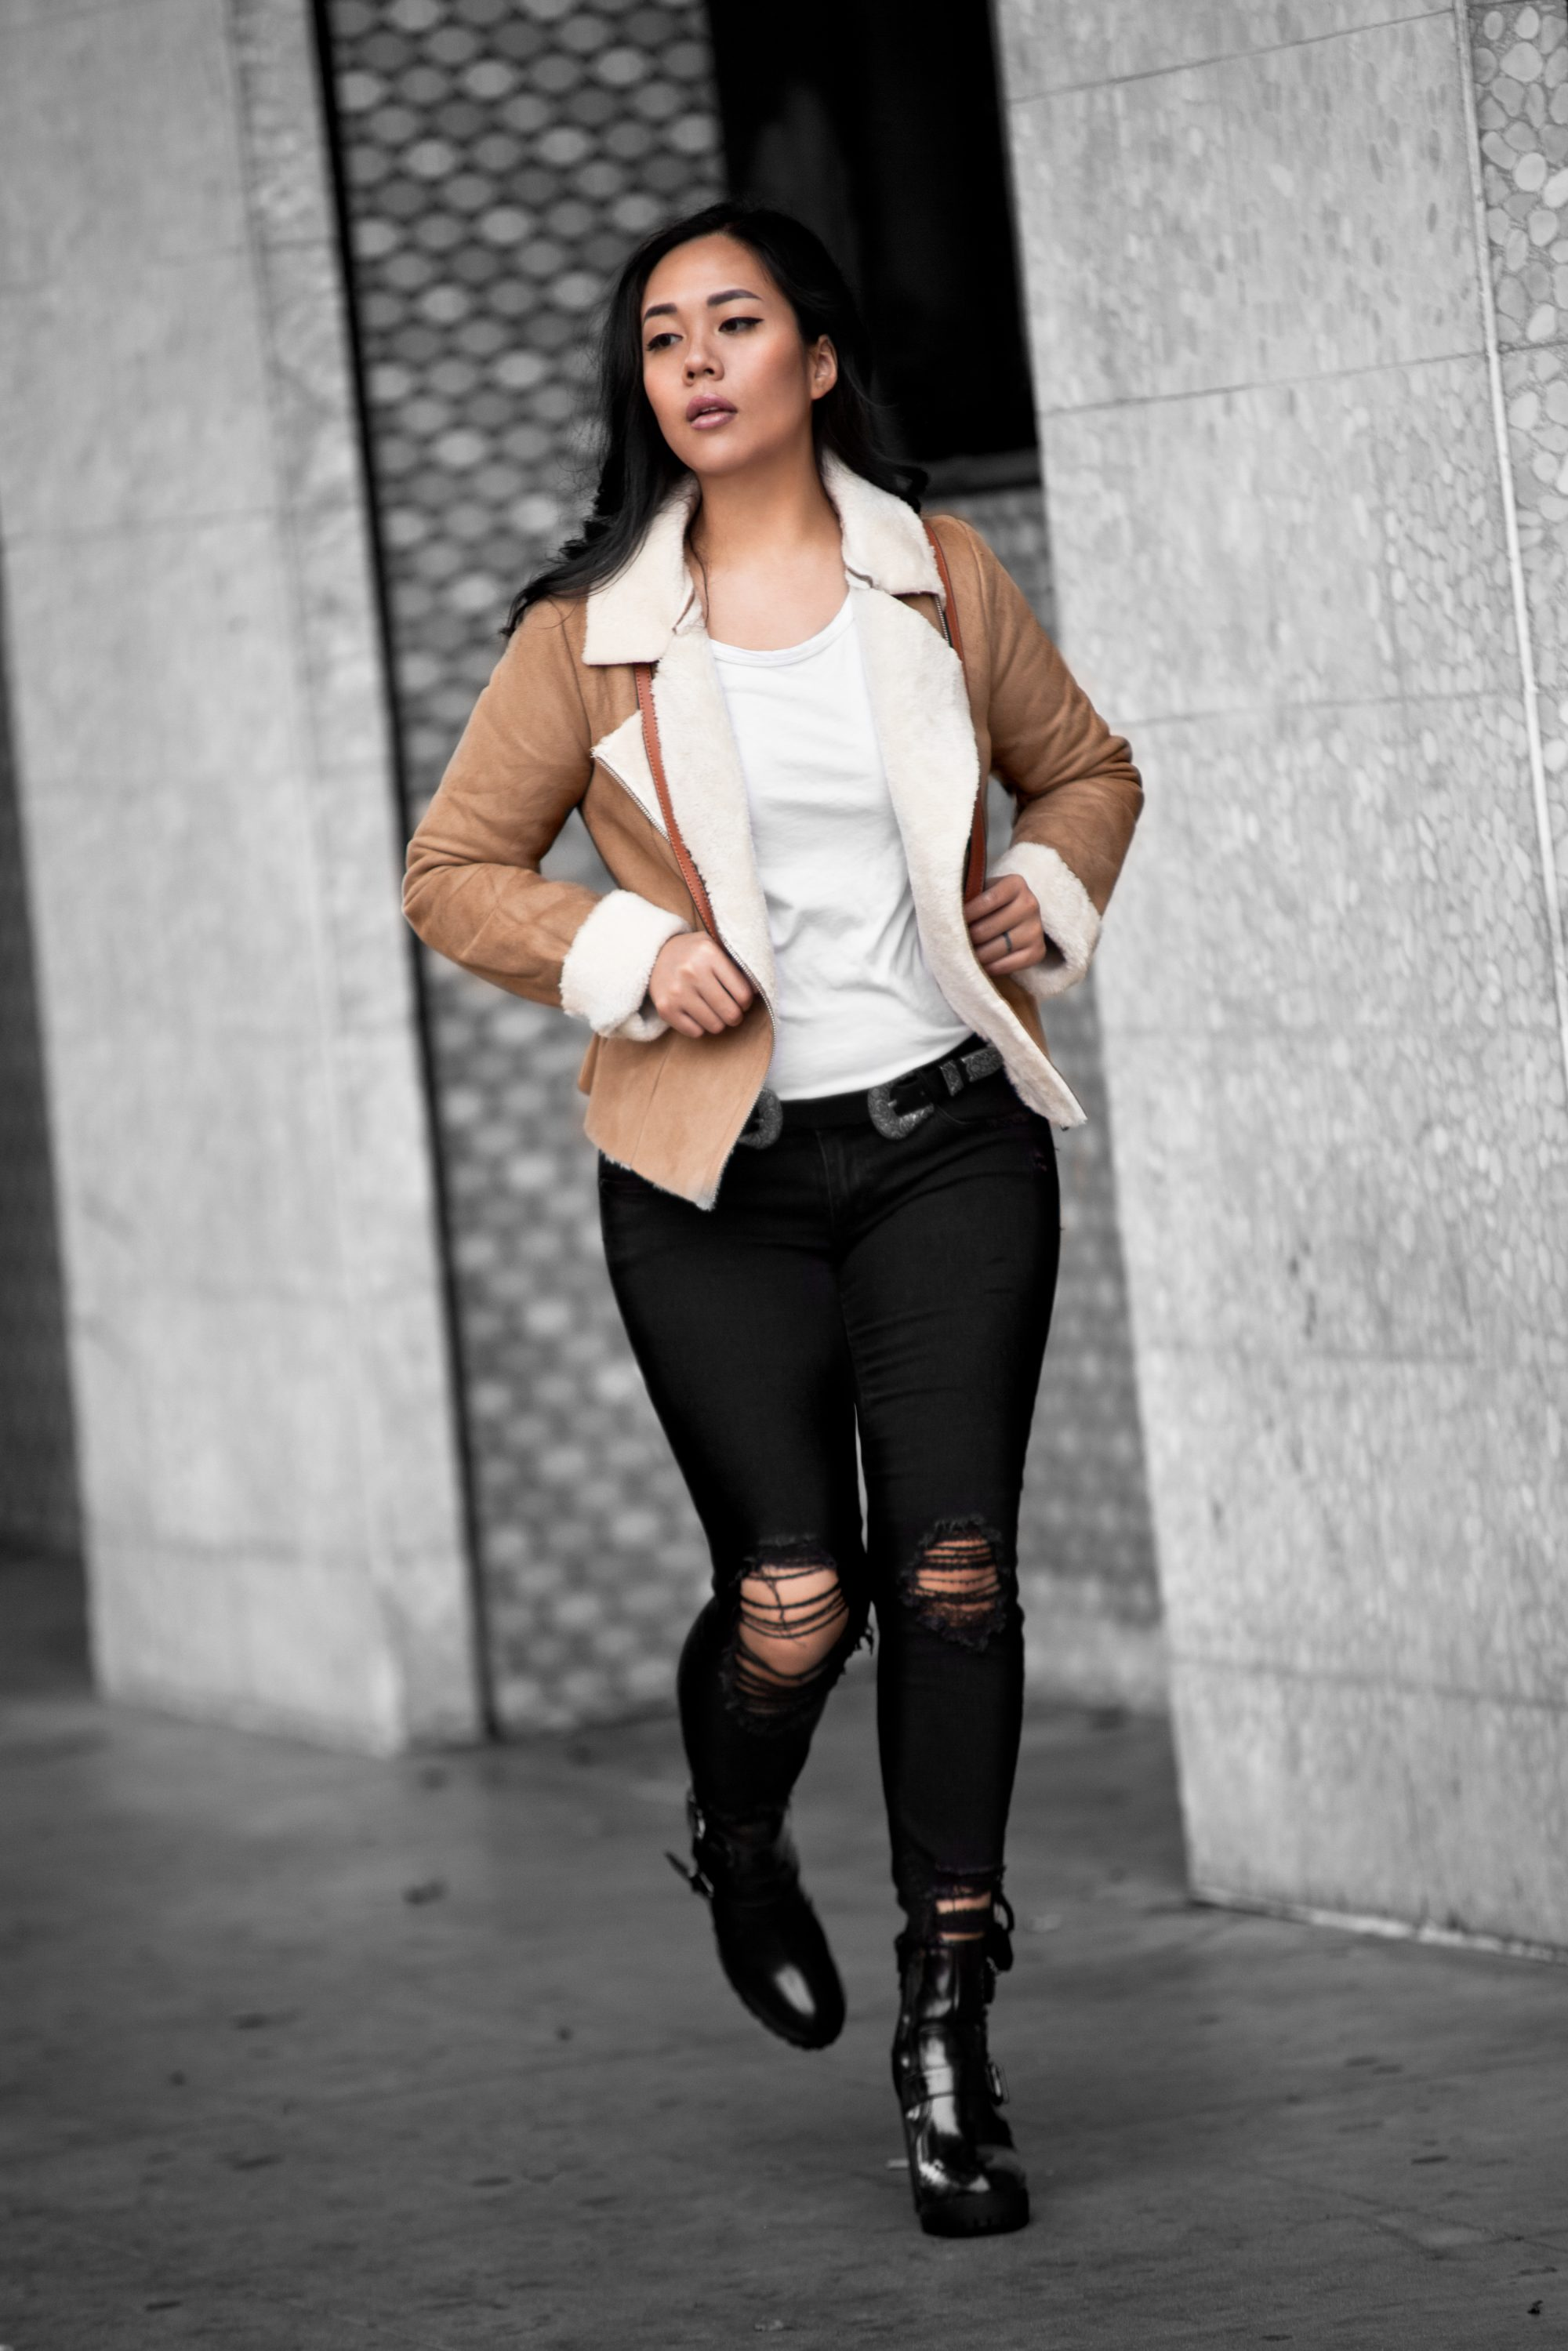 Shearling coats are so on-trend for winter. You can wear it fitted and pair it with high heels for a feminine look, or size up and wear it loose with flat moto boots for an effortlessly chic outfit. Get more styling tips at www.theballeronabudget.com